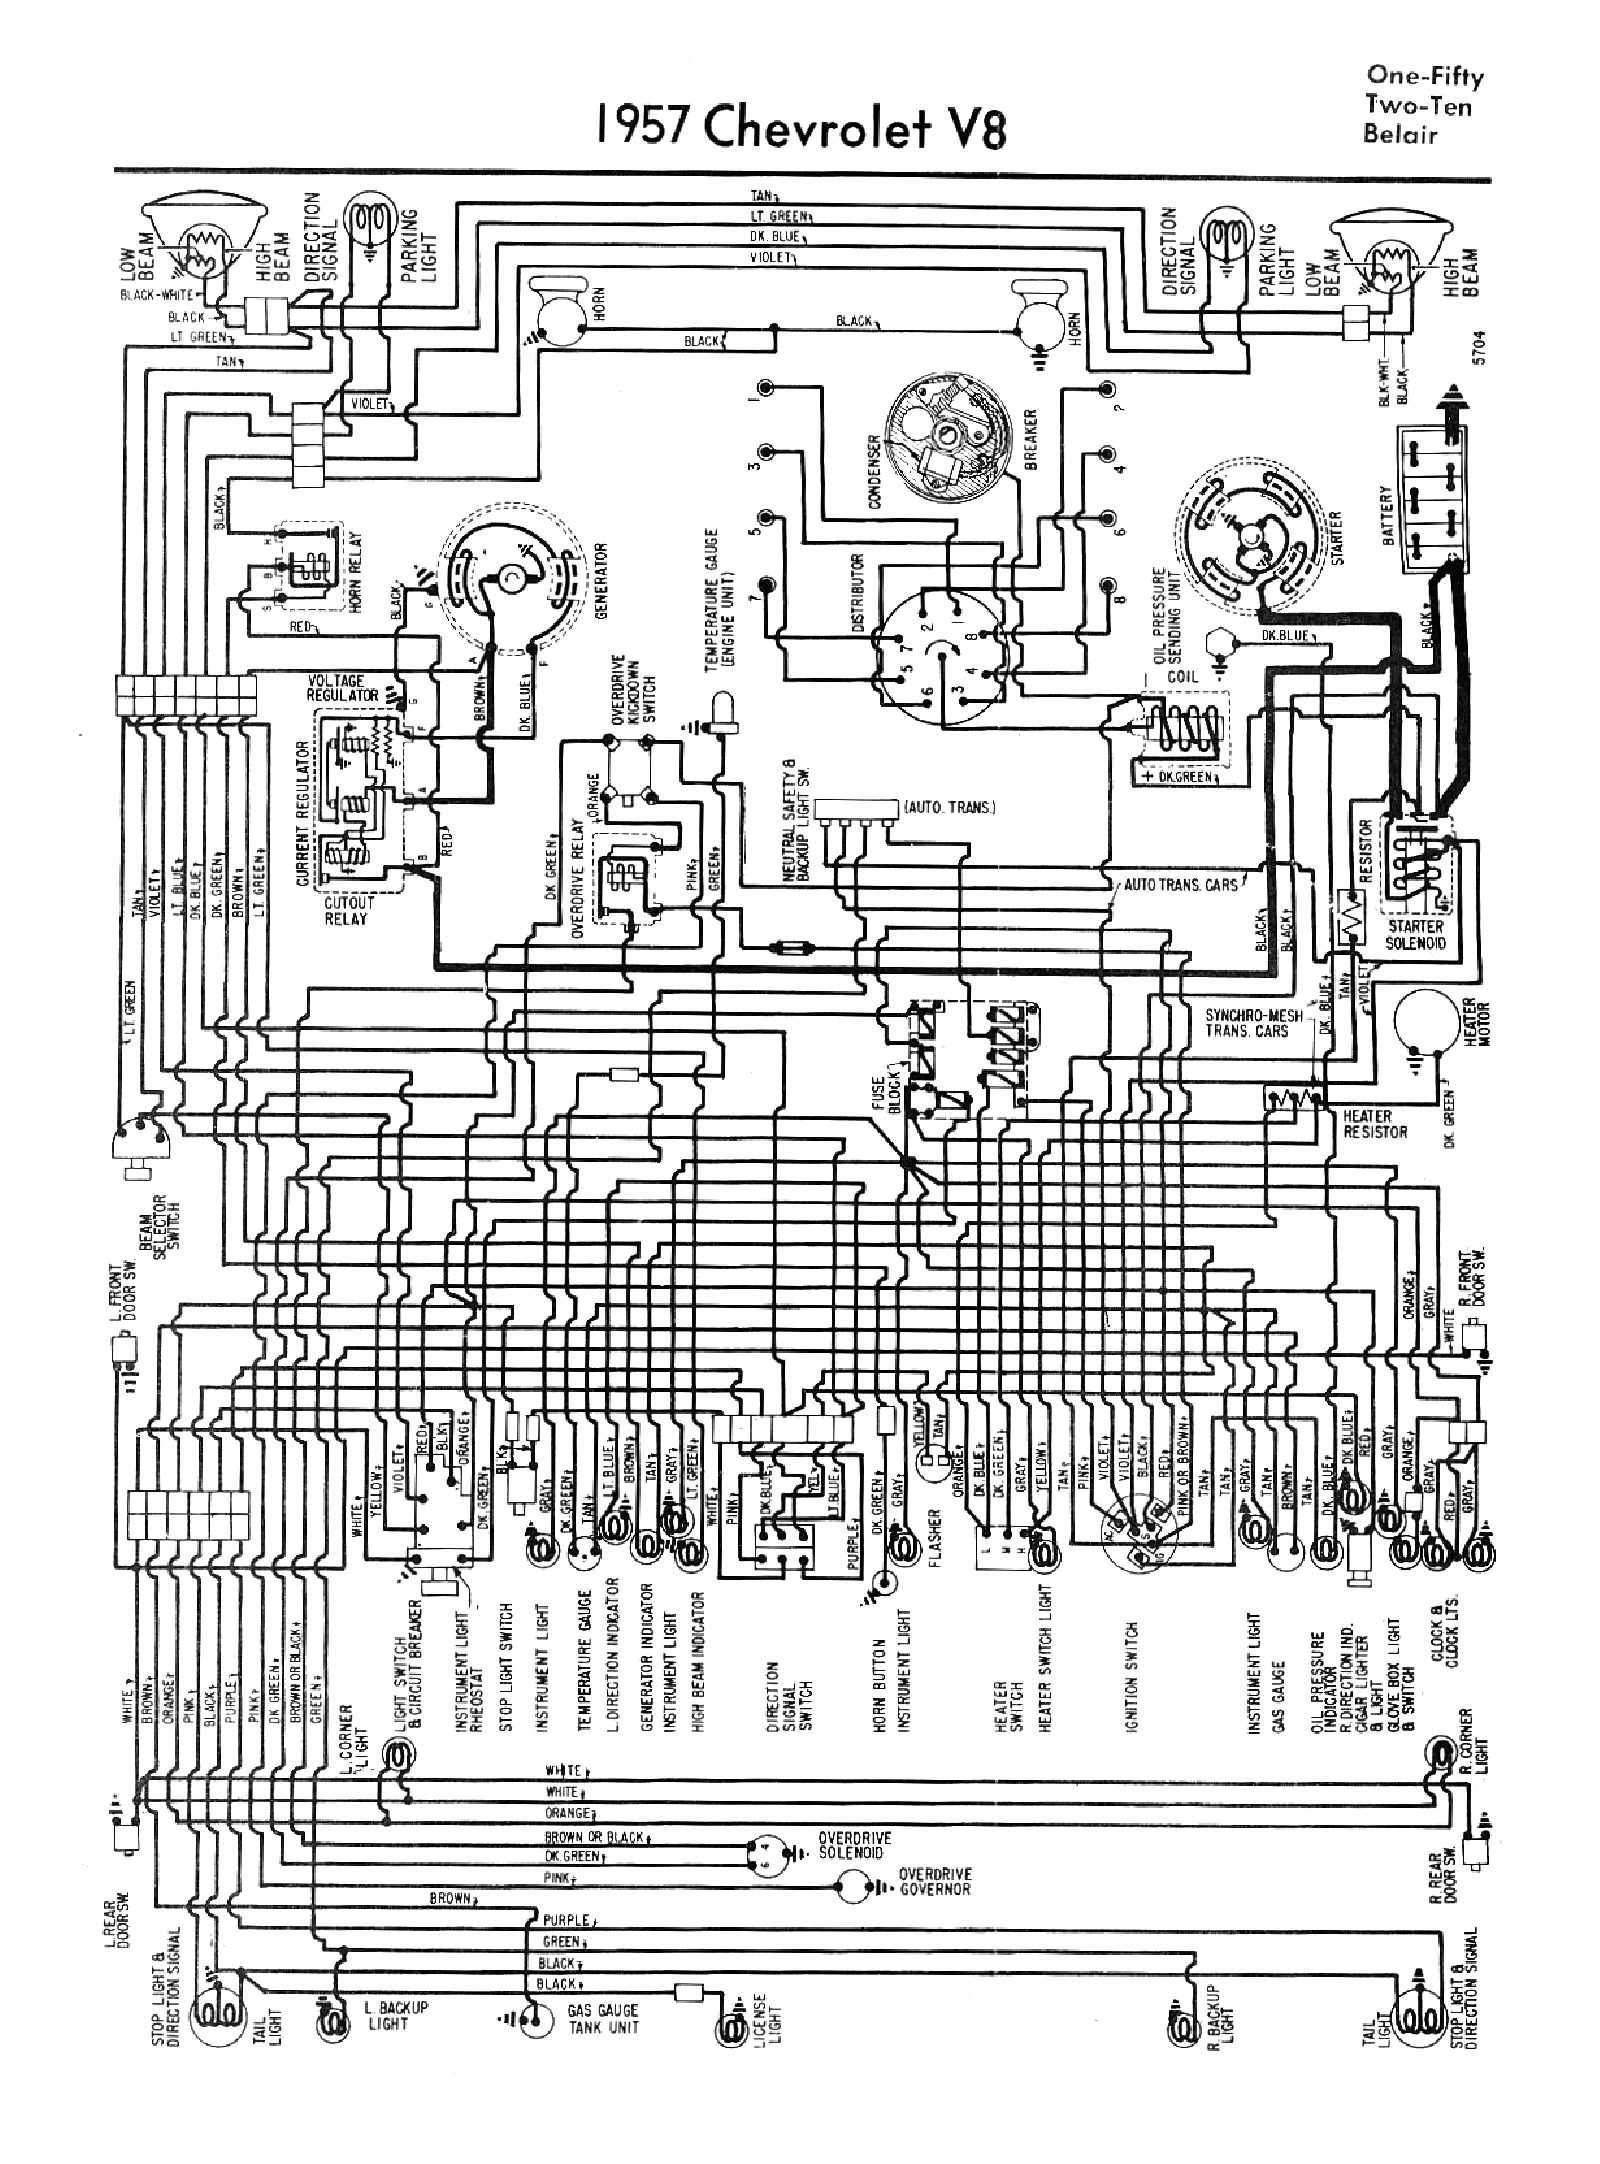 1957 chevy wiring diagram 1957 image wiring diagram 57 chevy wiring diagram 57 home wiring diagrams on 1957 chevy wiring diagram